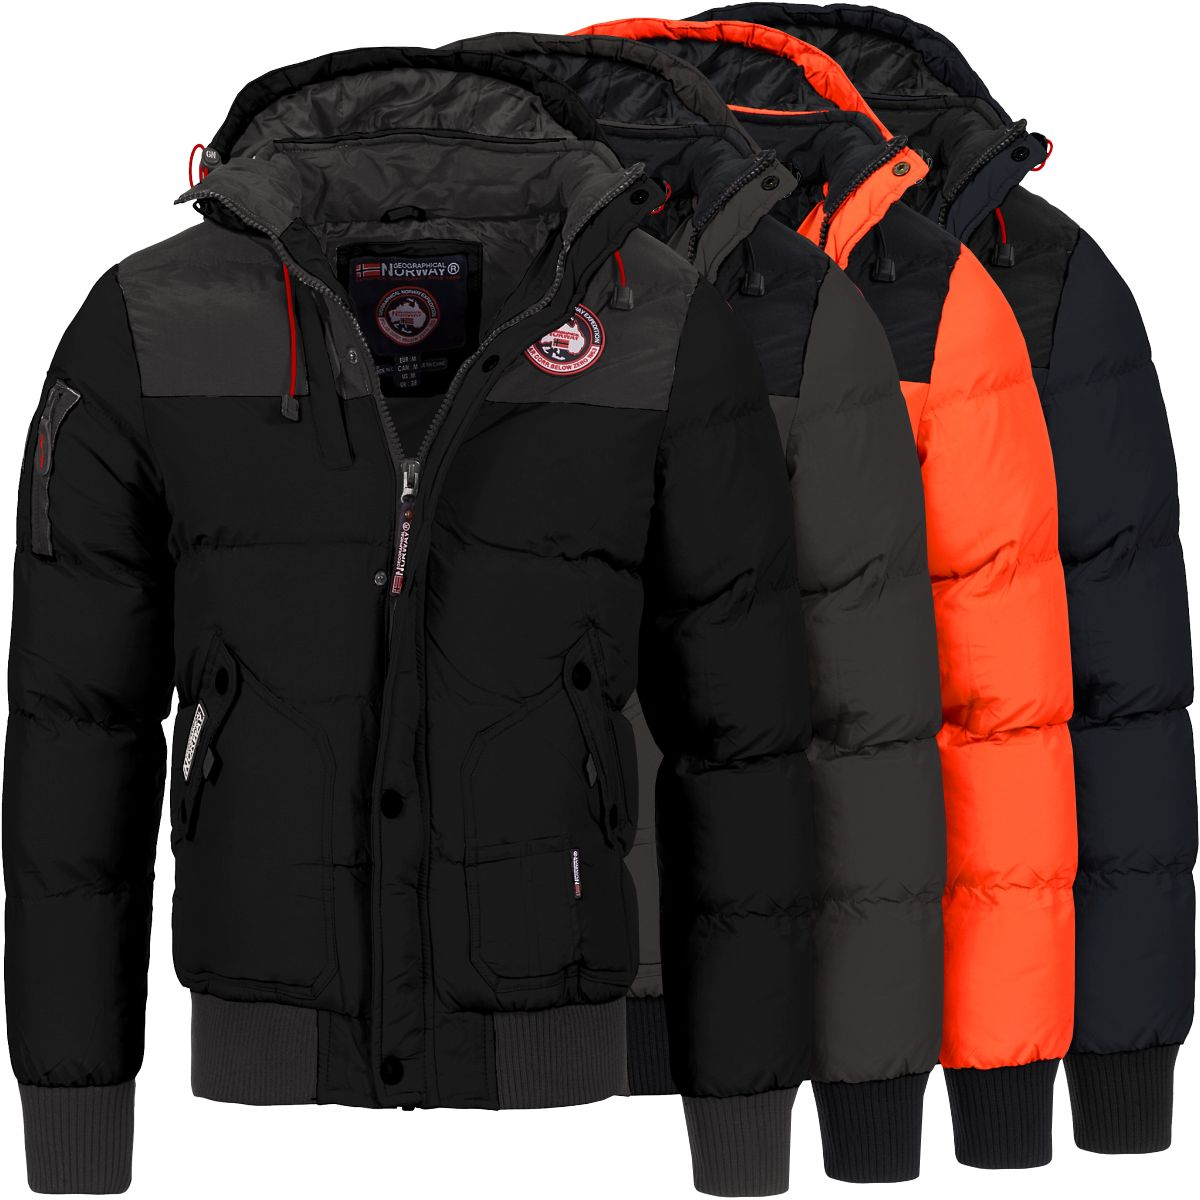 geographical norway herren winterjacke vortex herrenjacke winter stepp jacke neu ebay. Black Bedroom Furniture Sets. Home Design Ideas